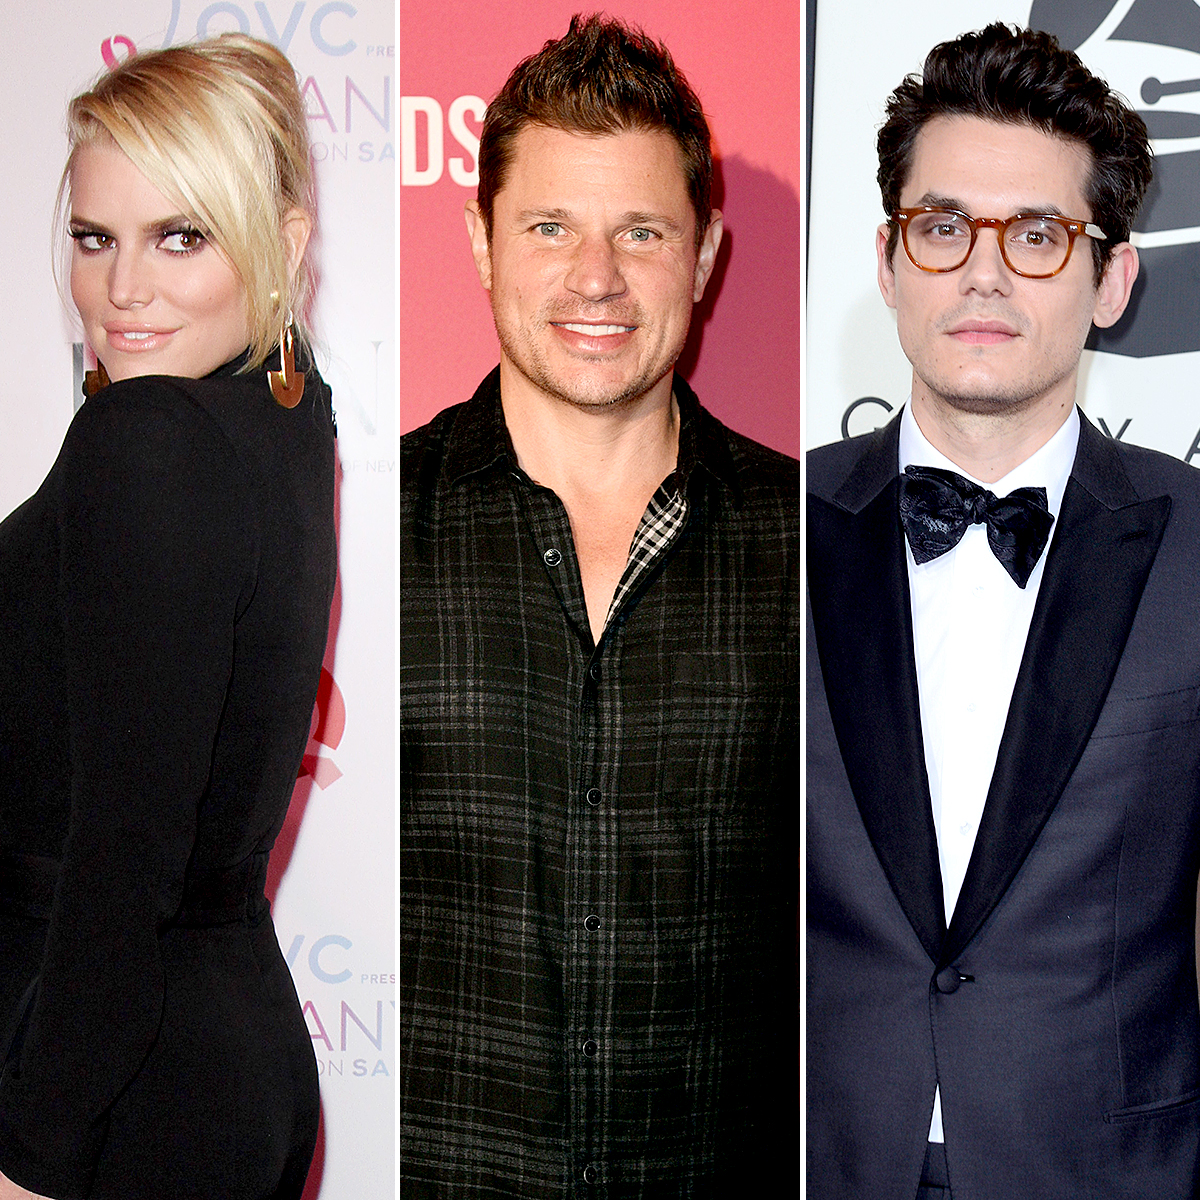 Jessica-Simpson-Believes-Her-Exes-Will-Be-Proud-of-Book